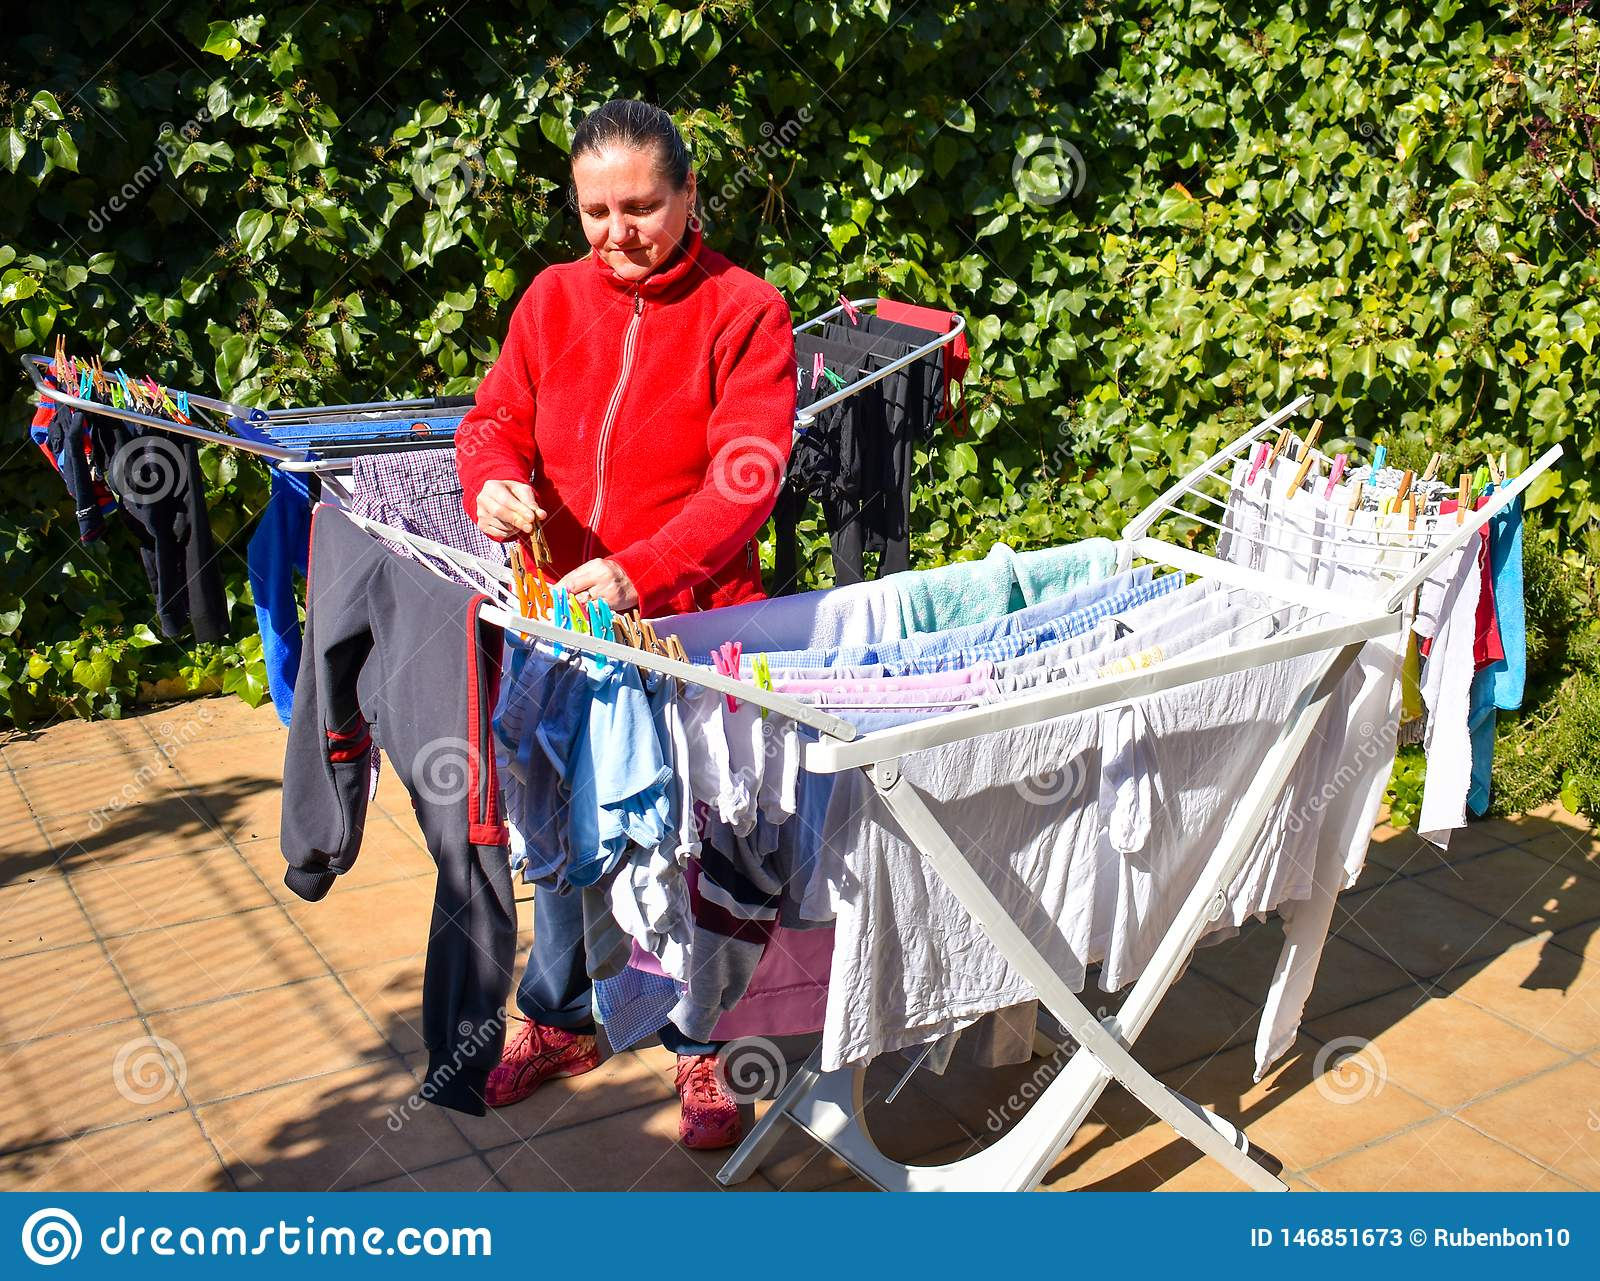 happy housewife holding the wet clothes just removed from the washing machine in the washing line put on the terrace of a garden